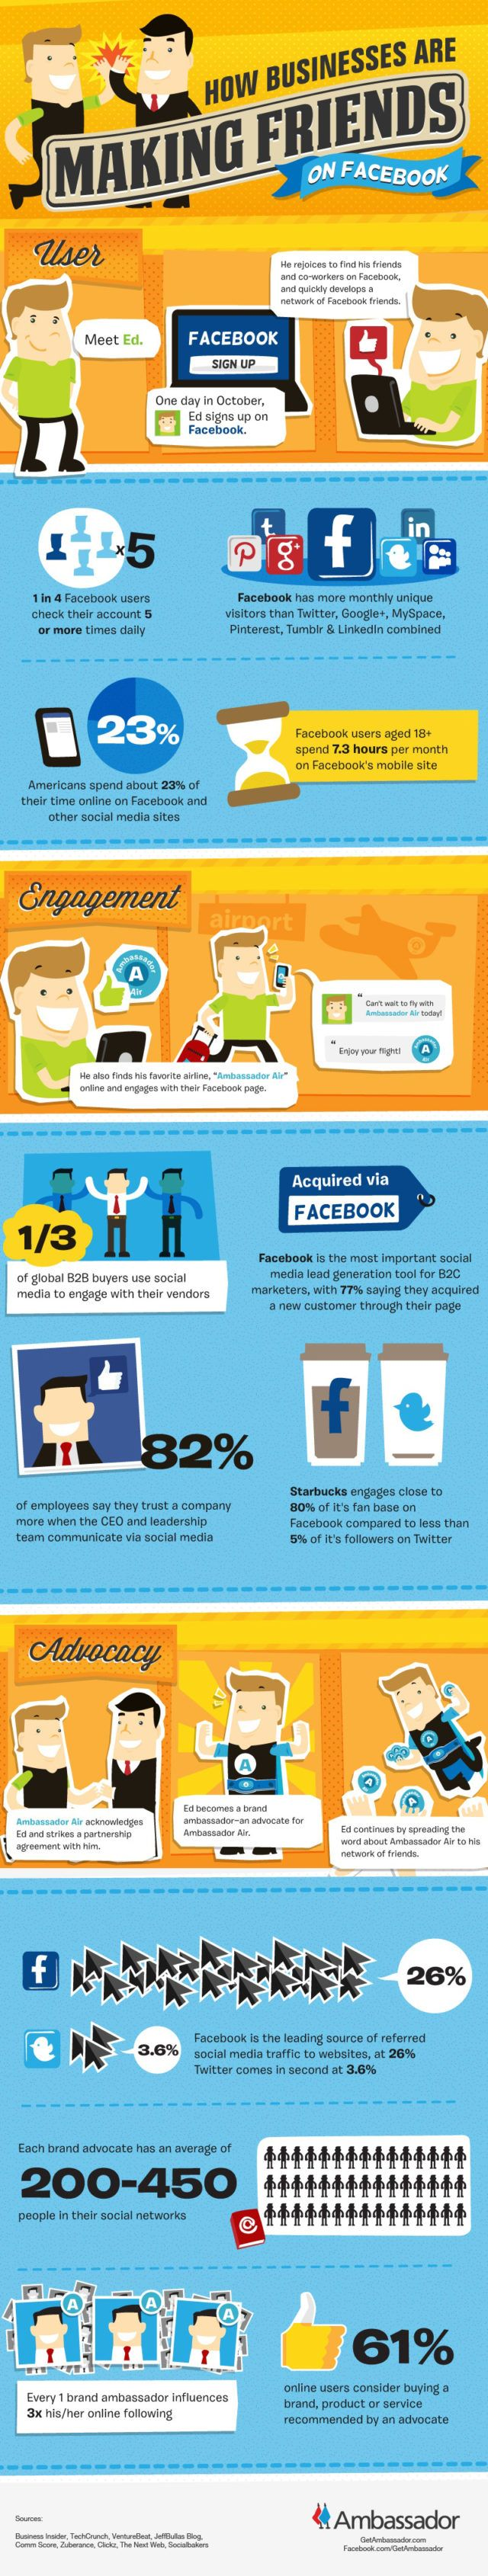 business facebook strategy